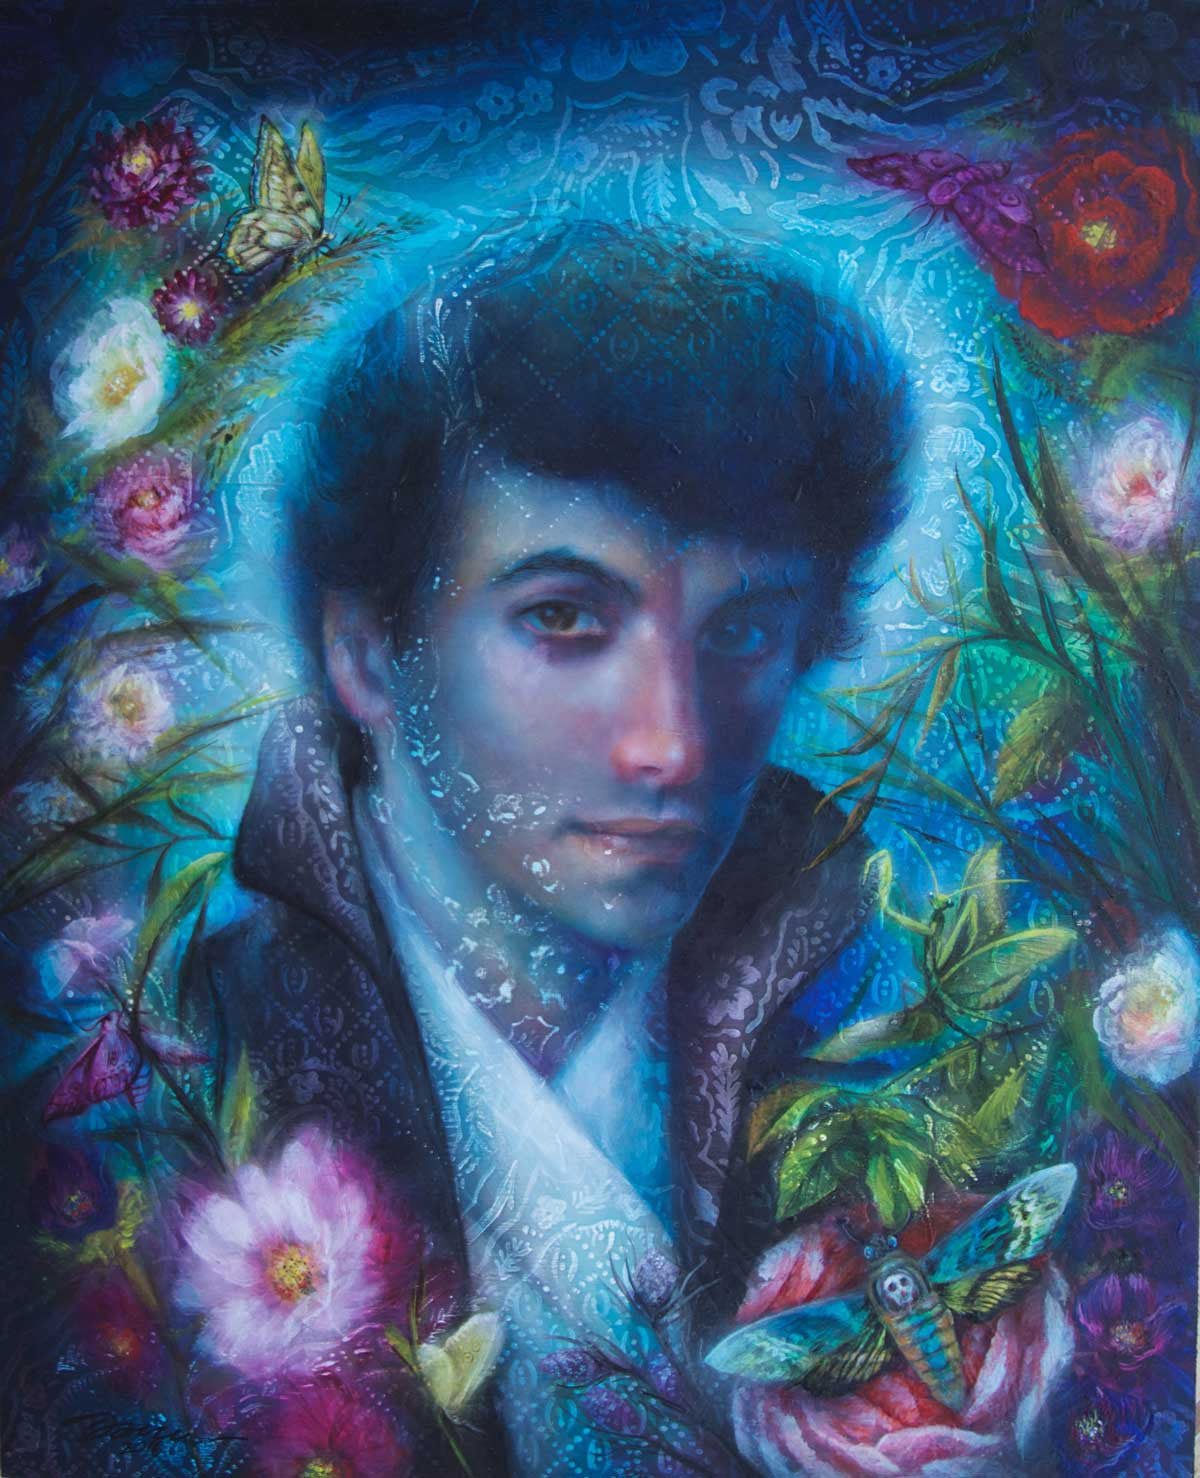 Dorian in the Midnight Garden